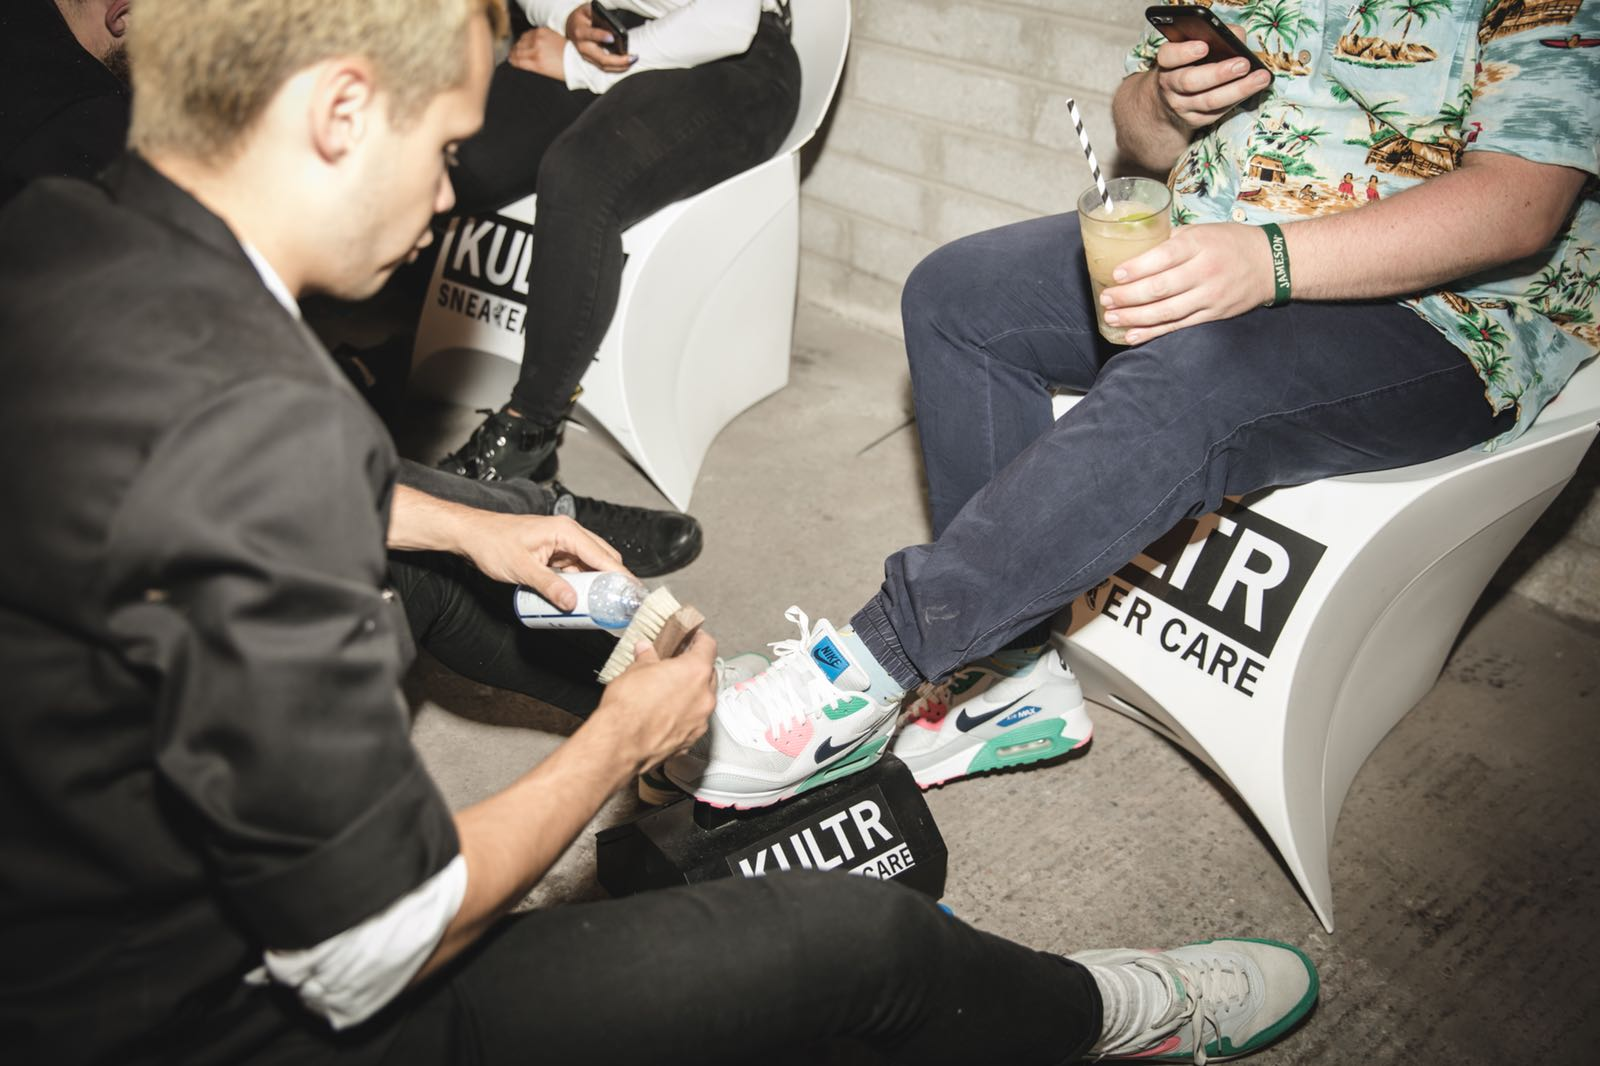 sneaker cleaning pop up shop corporate event activations.jpg